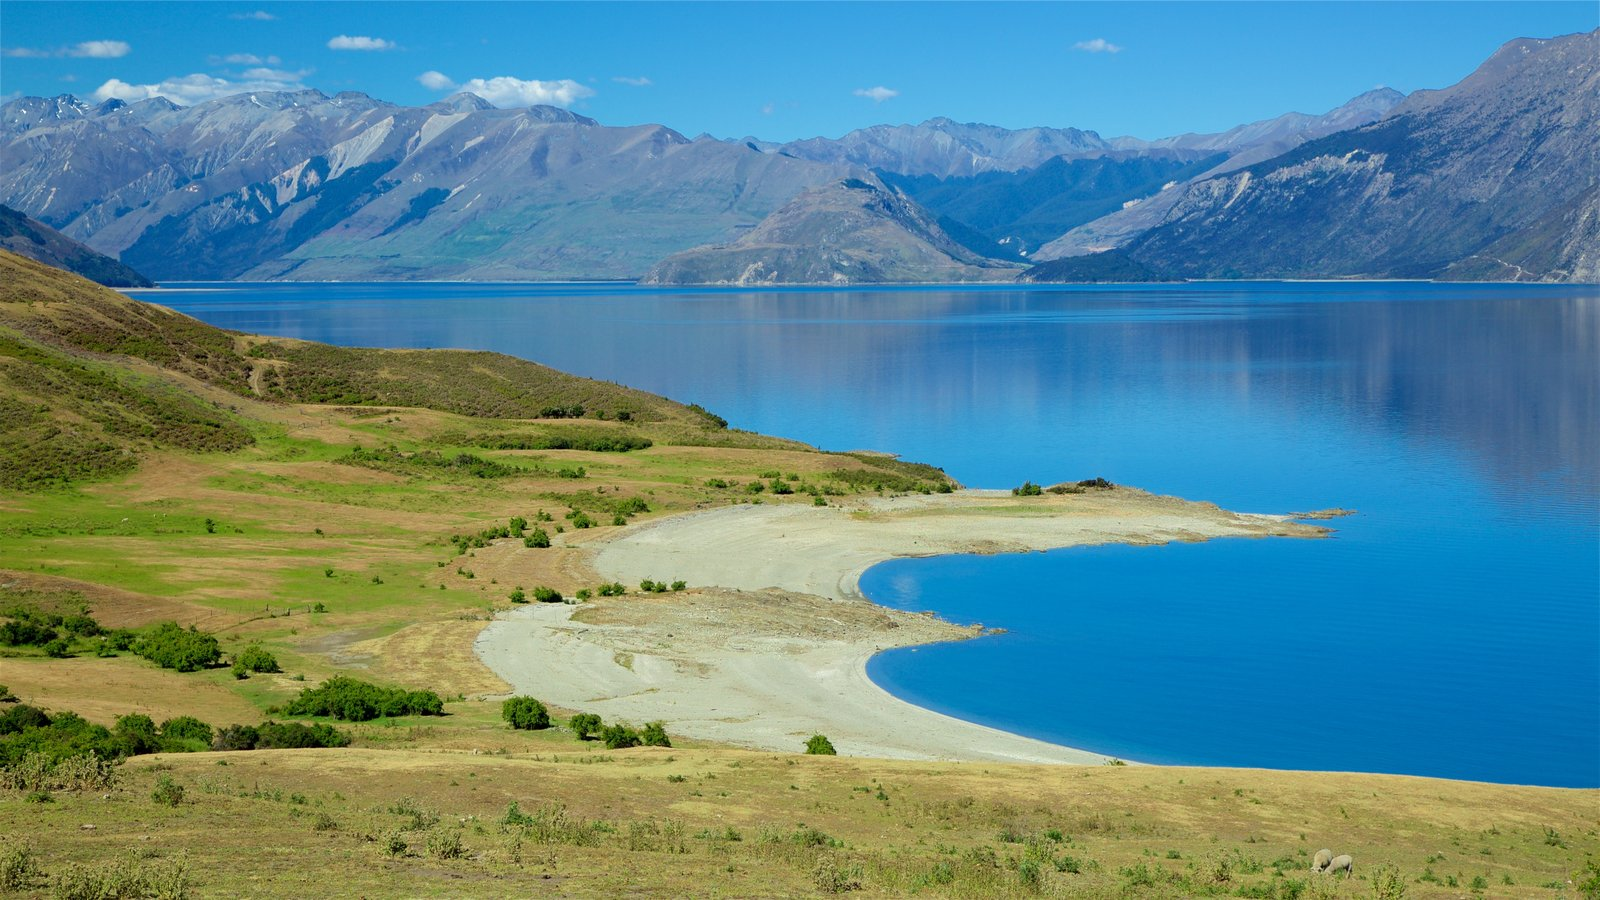 Lake Hawea which includes tranquil scenes, mountains and a lake or waterhole